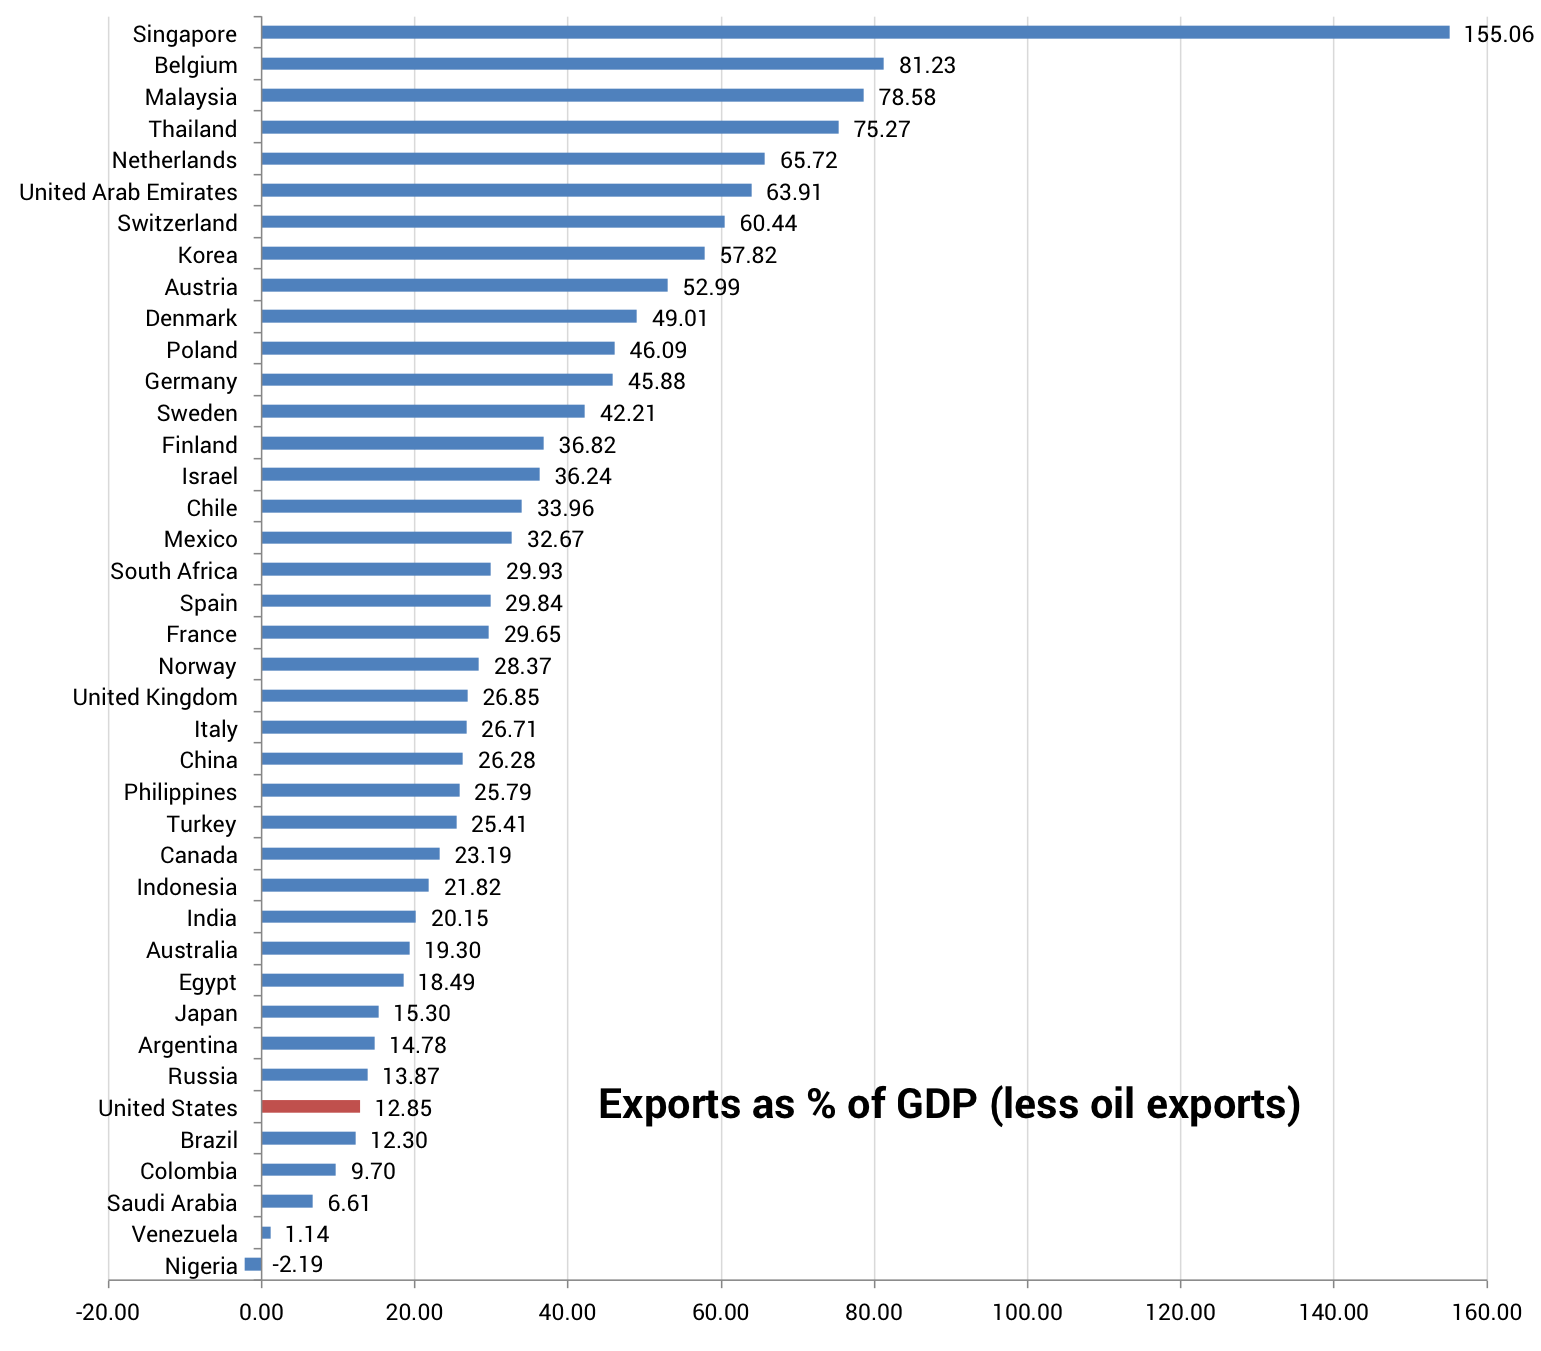 Exports as a % of GDP by country